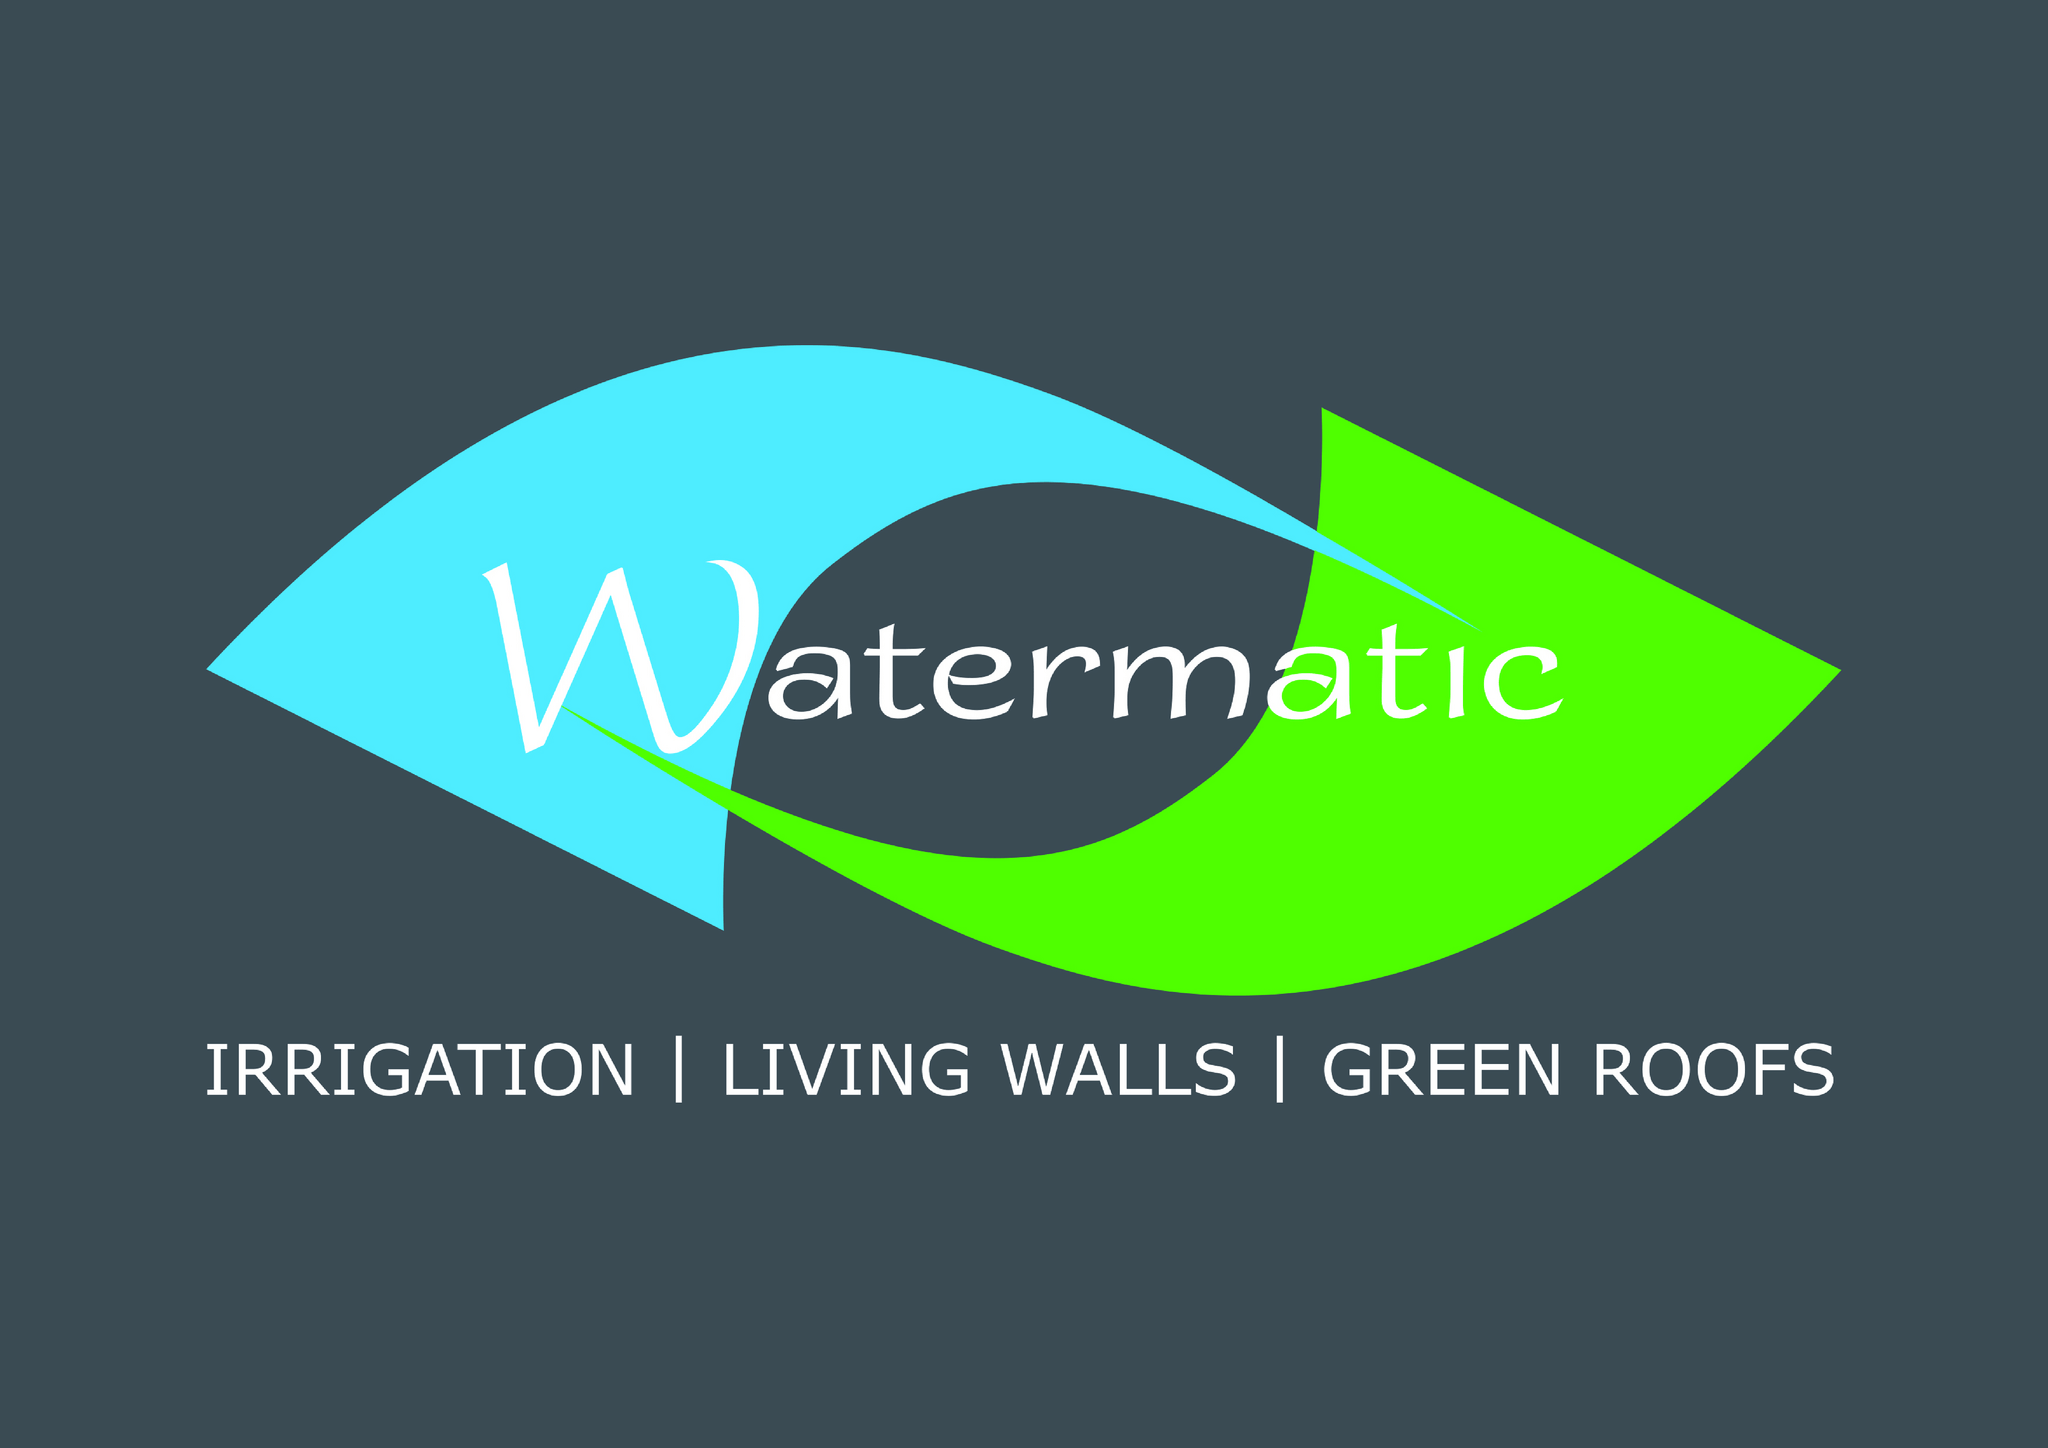 Watermatic Ltd